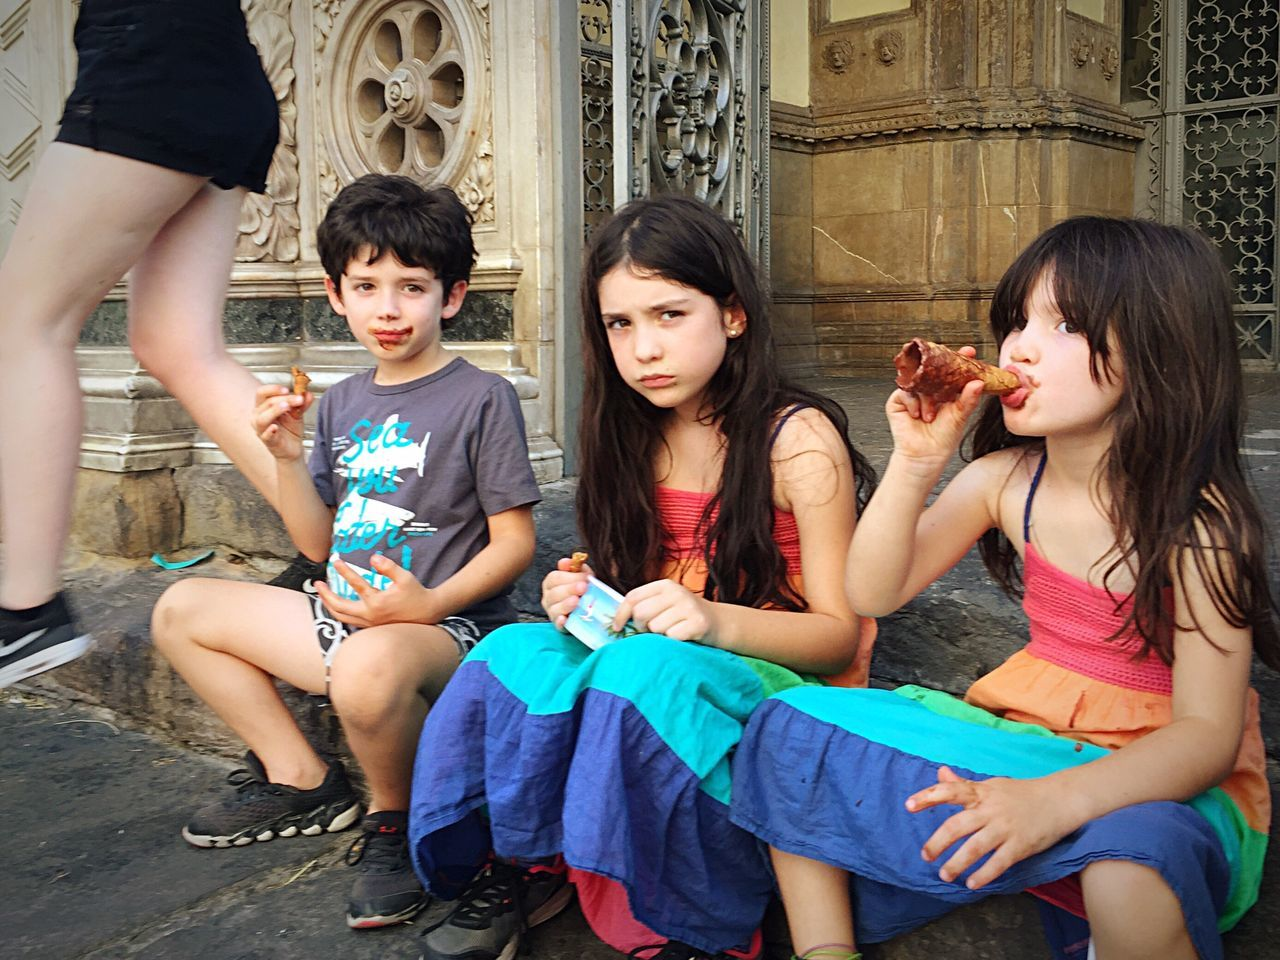 Enjoy The New Normal Children Gelato Florence Italy Rolemodels Coolkids if my children can't eat gelato the way they want and they have to conform to be politically correct even when eating gelato, they'll probably be in misery. Why bring them to life and make them suffer ?